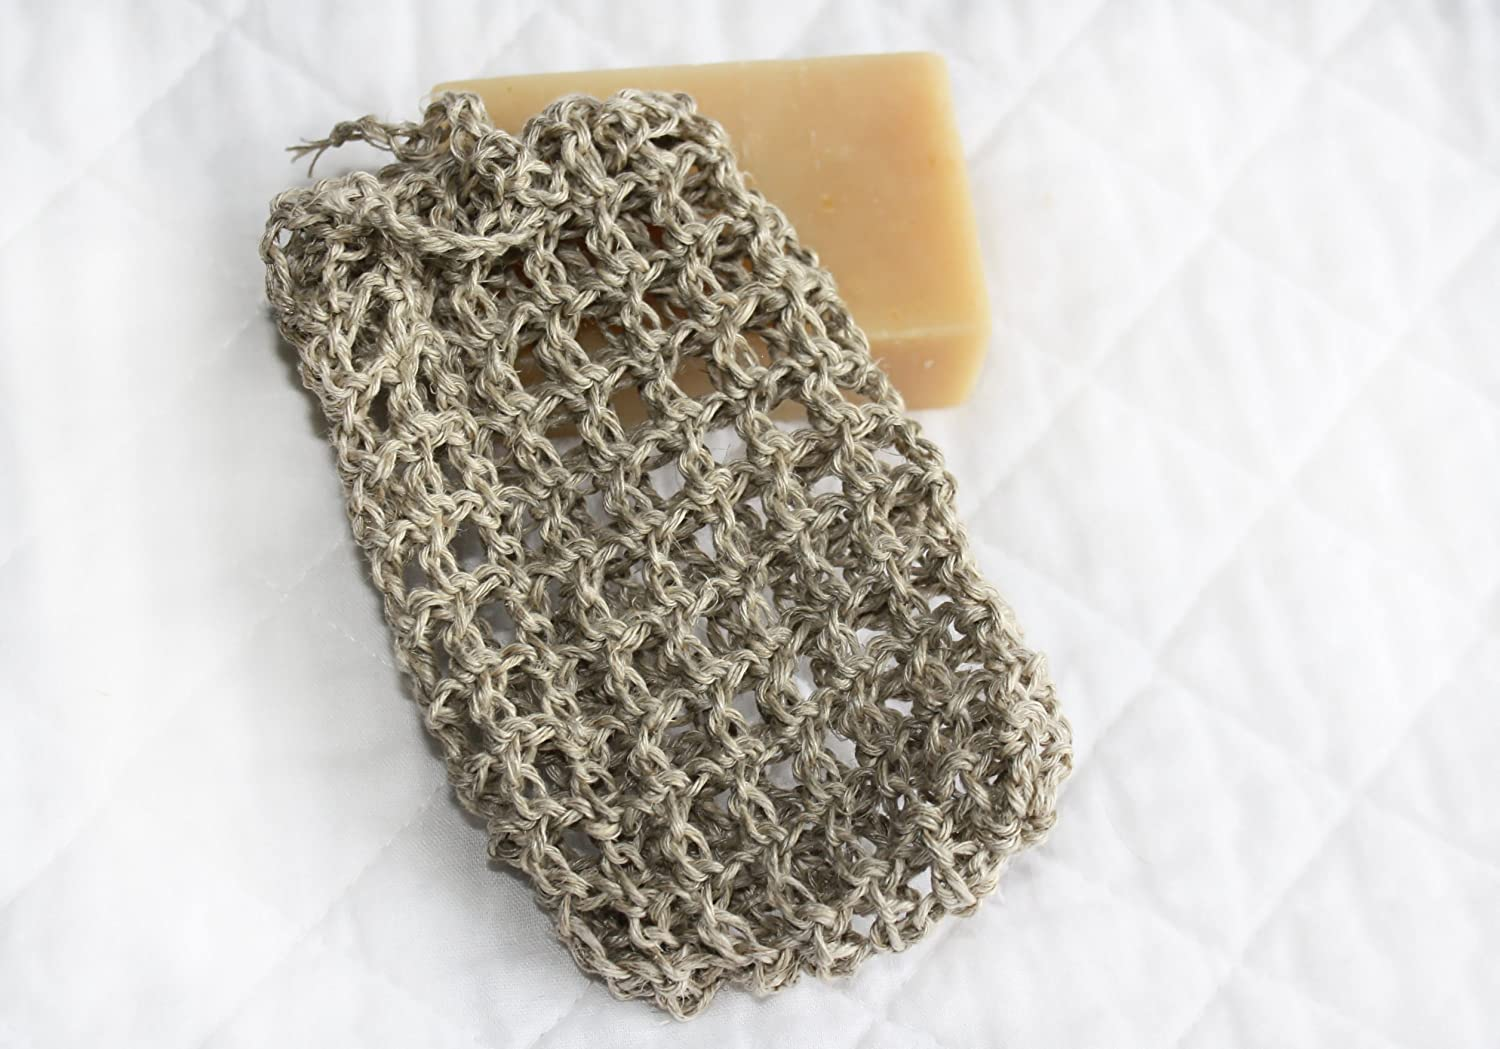 Crocheted Natural Hemp Soap Bag, Soap Saver